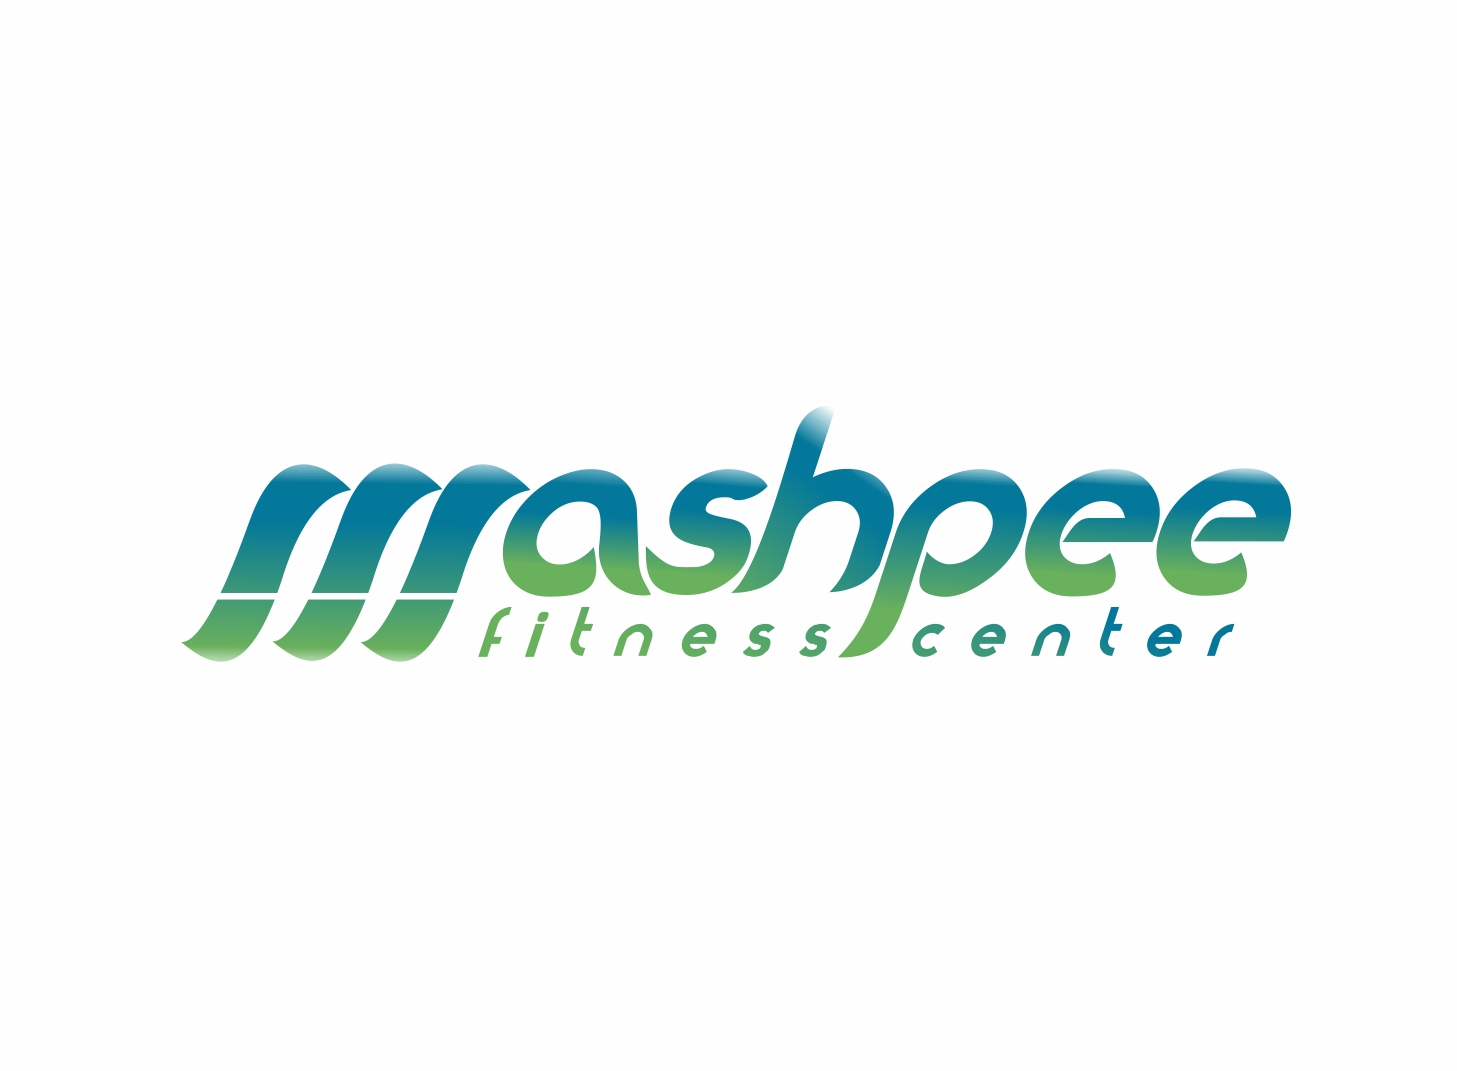 Logo Design by Zdravko Krulj - Entry No. 44 in the Logo Design Contest New Logo Design for Mashpee Fitness Center.